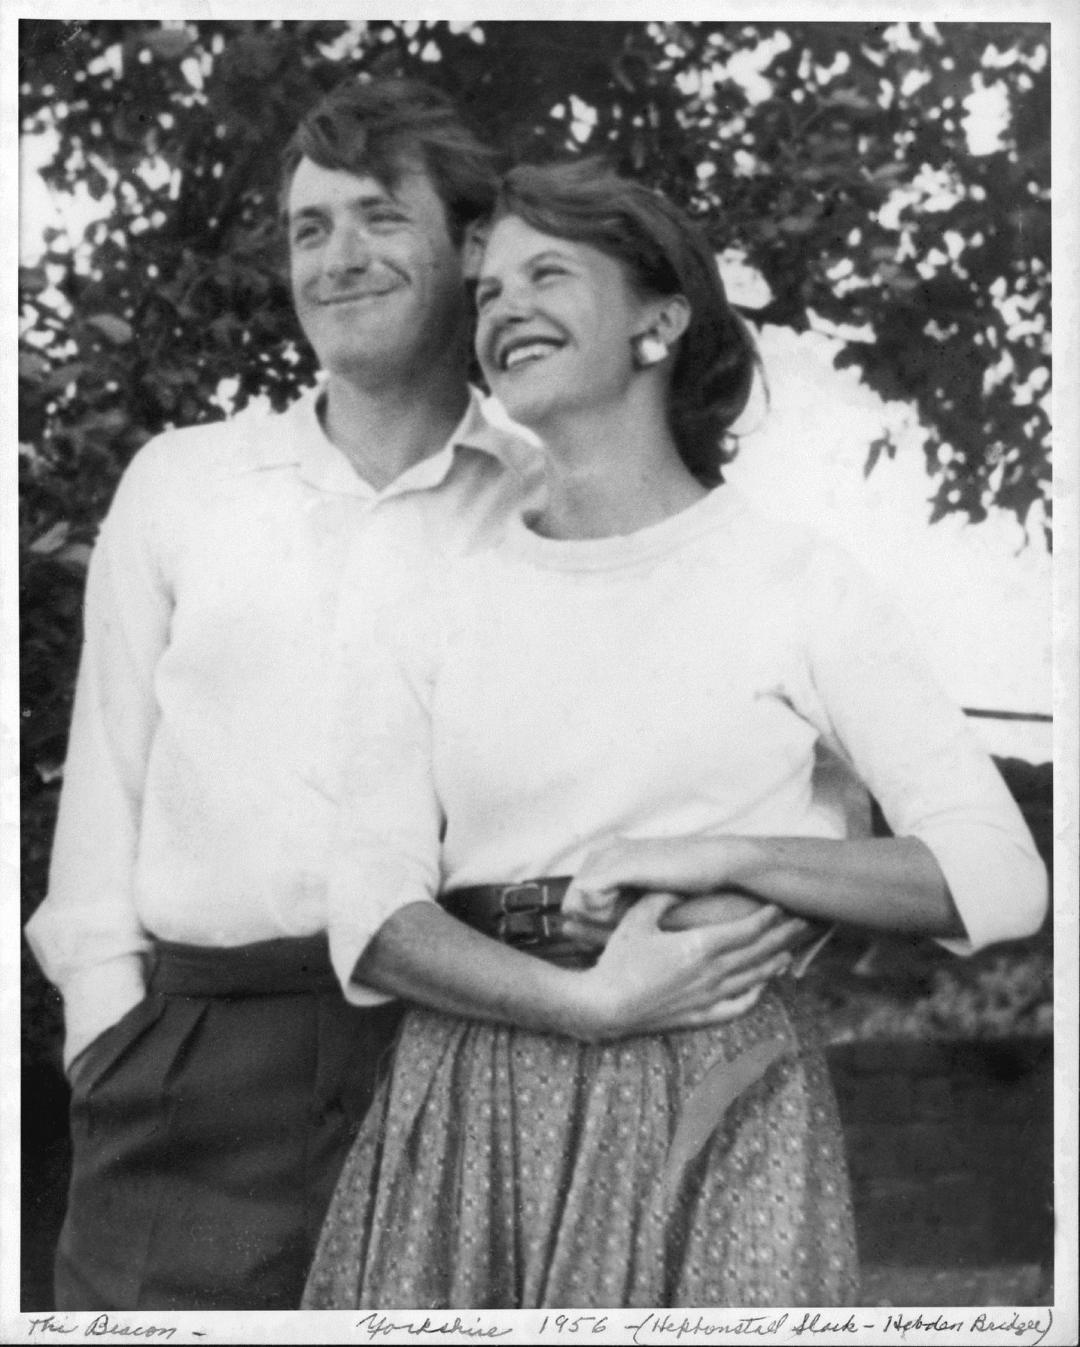 Ted-Hughes-and-Sylvia-Plath-in-Yorkshire-UK-1956.-Ph.-Harry-Ogden-Courtesy-Mortimer-Rare-Book-Collection-Smith-College-Northampton-Massachusetts.jpg